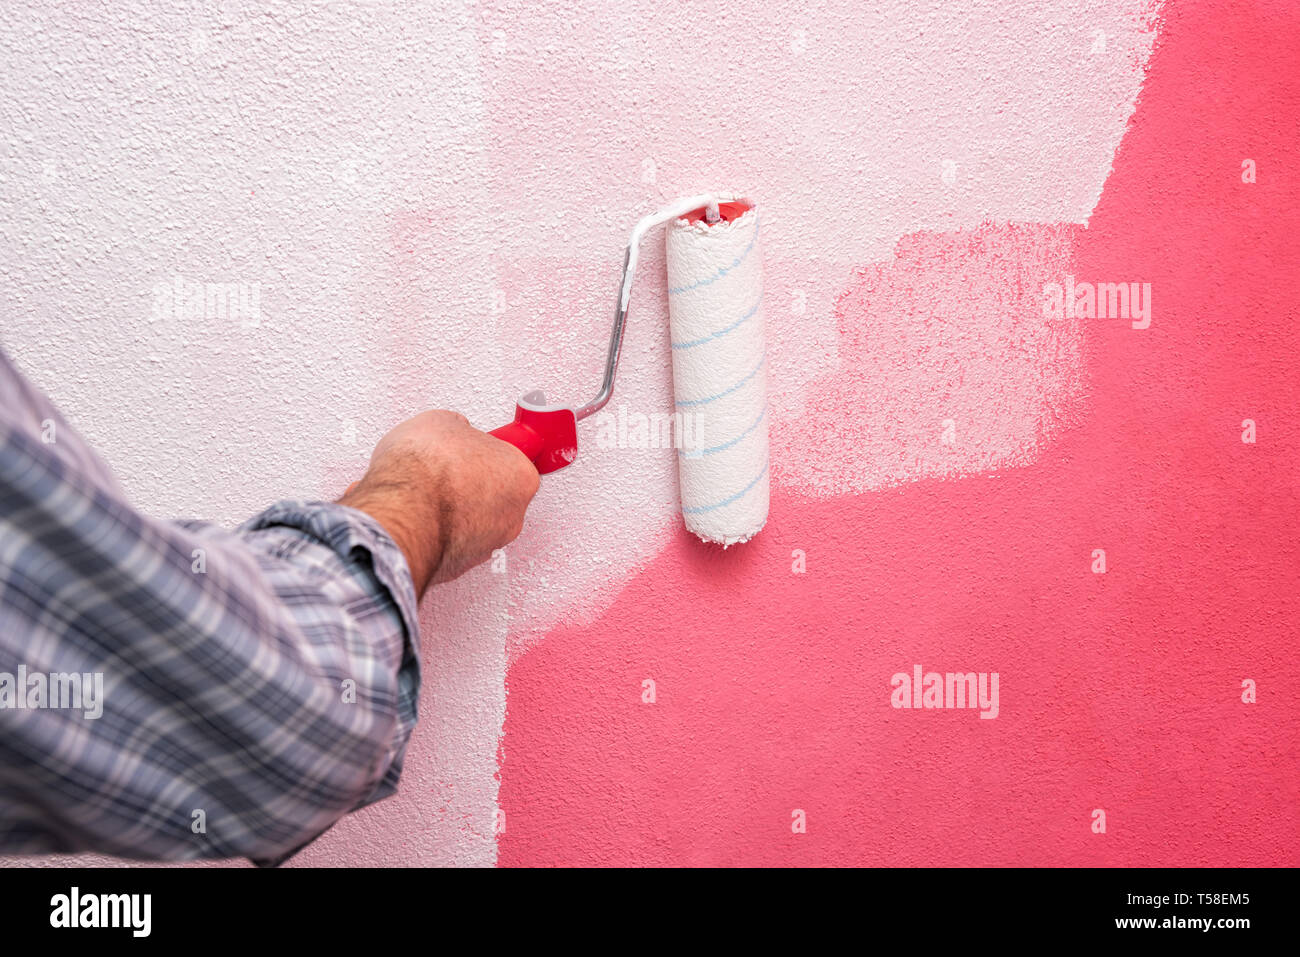 Caucasian house painter worker, painting the pink wall with